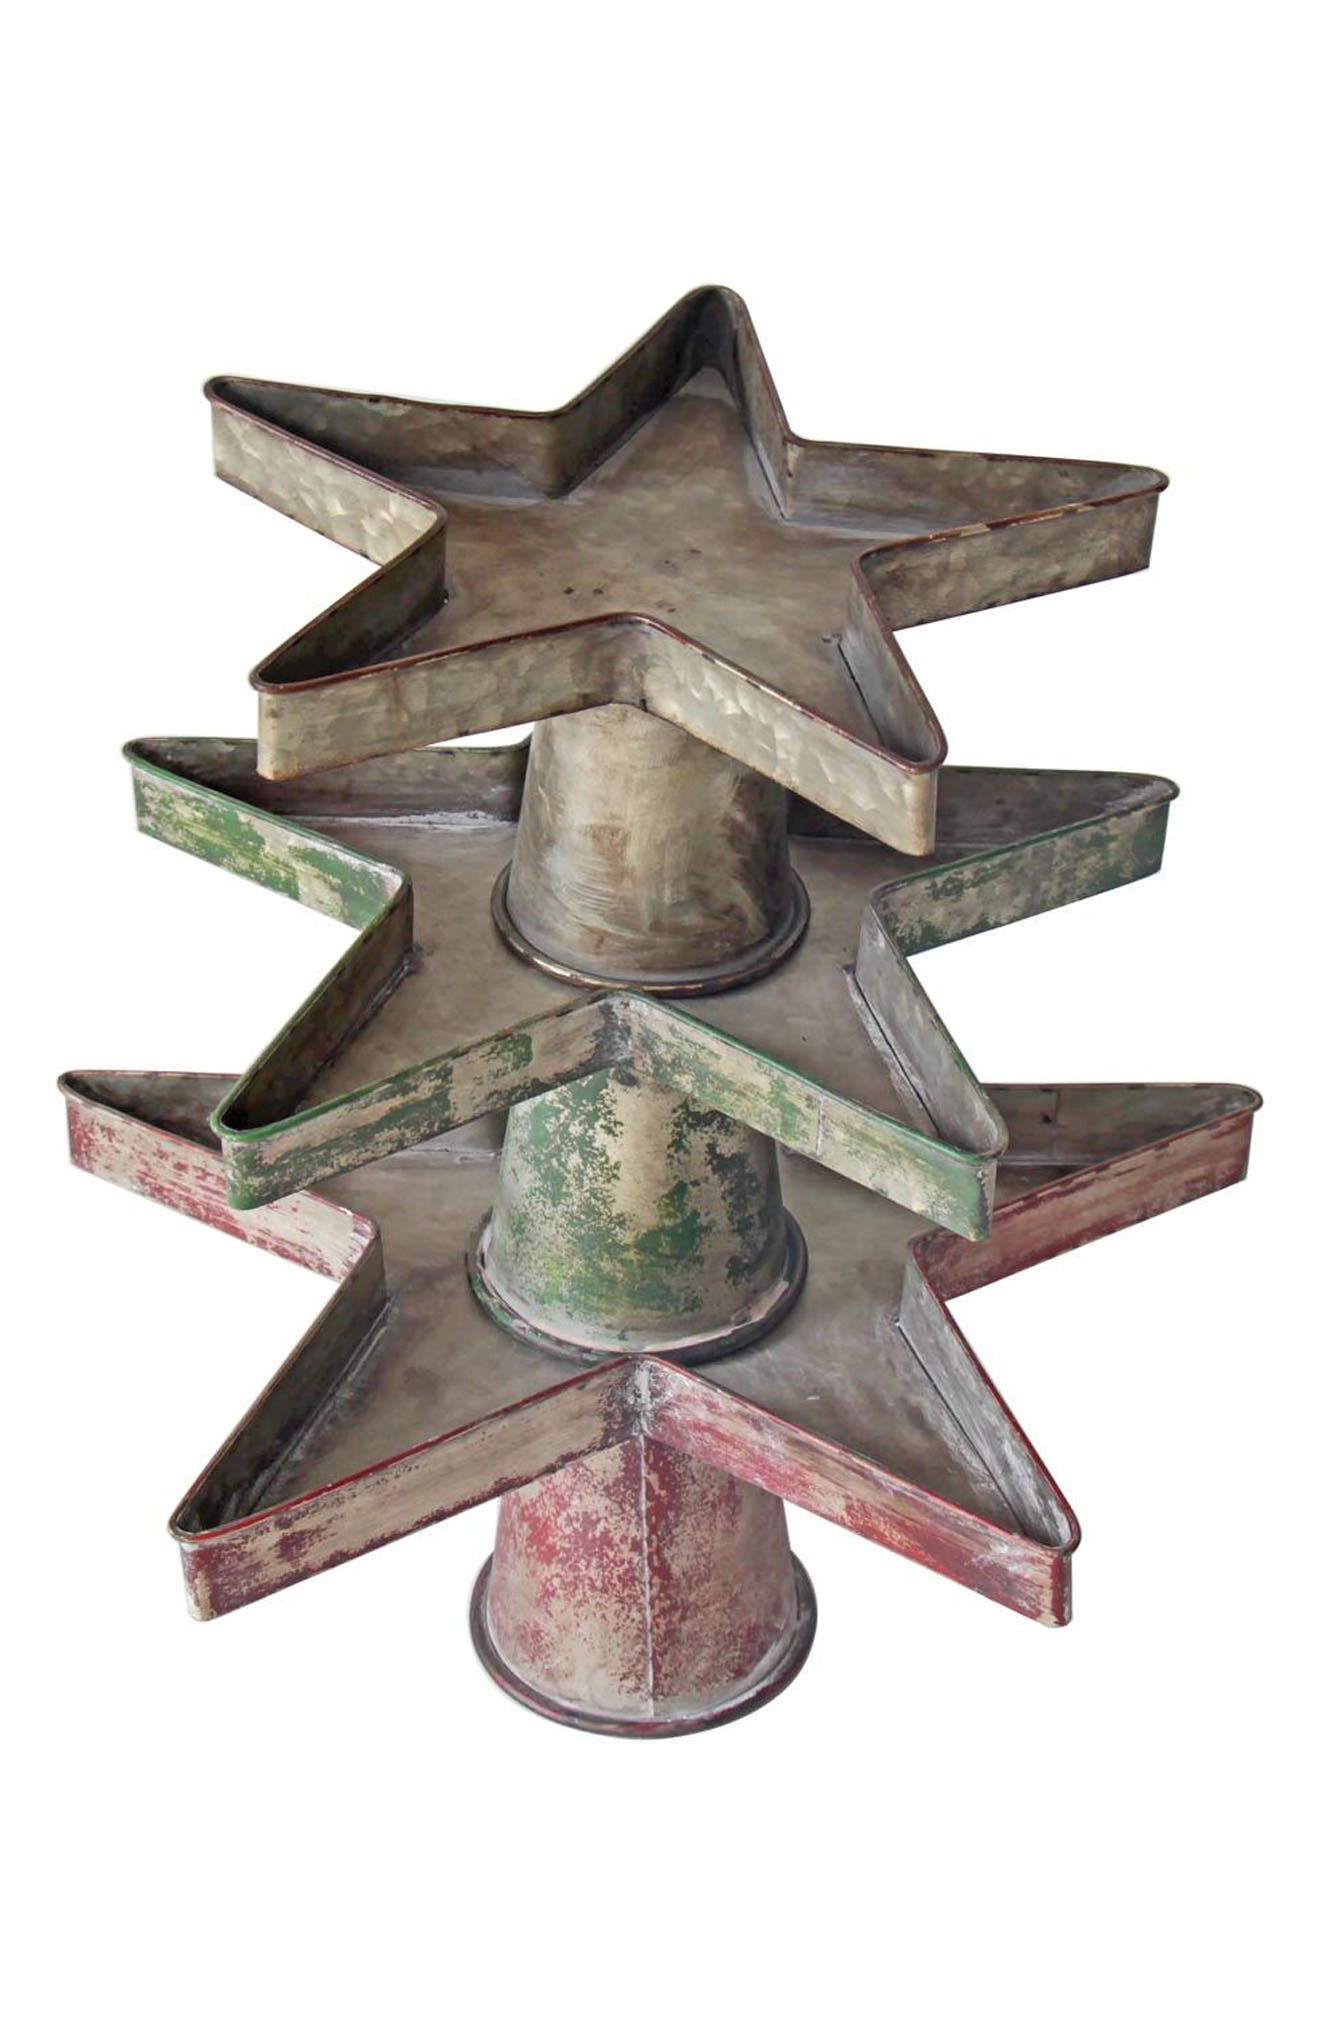 Alternate Image 1 Selected - Foreside Set of 3 Stackable Galvanized Metal Star Trays